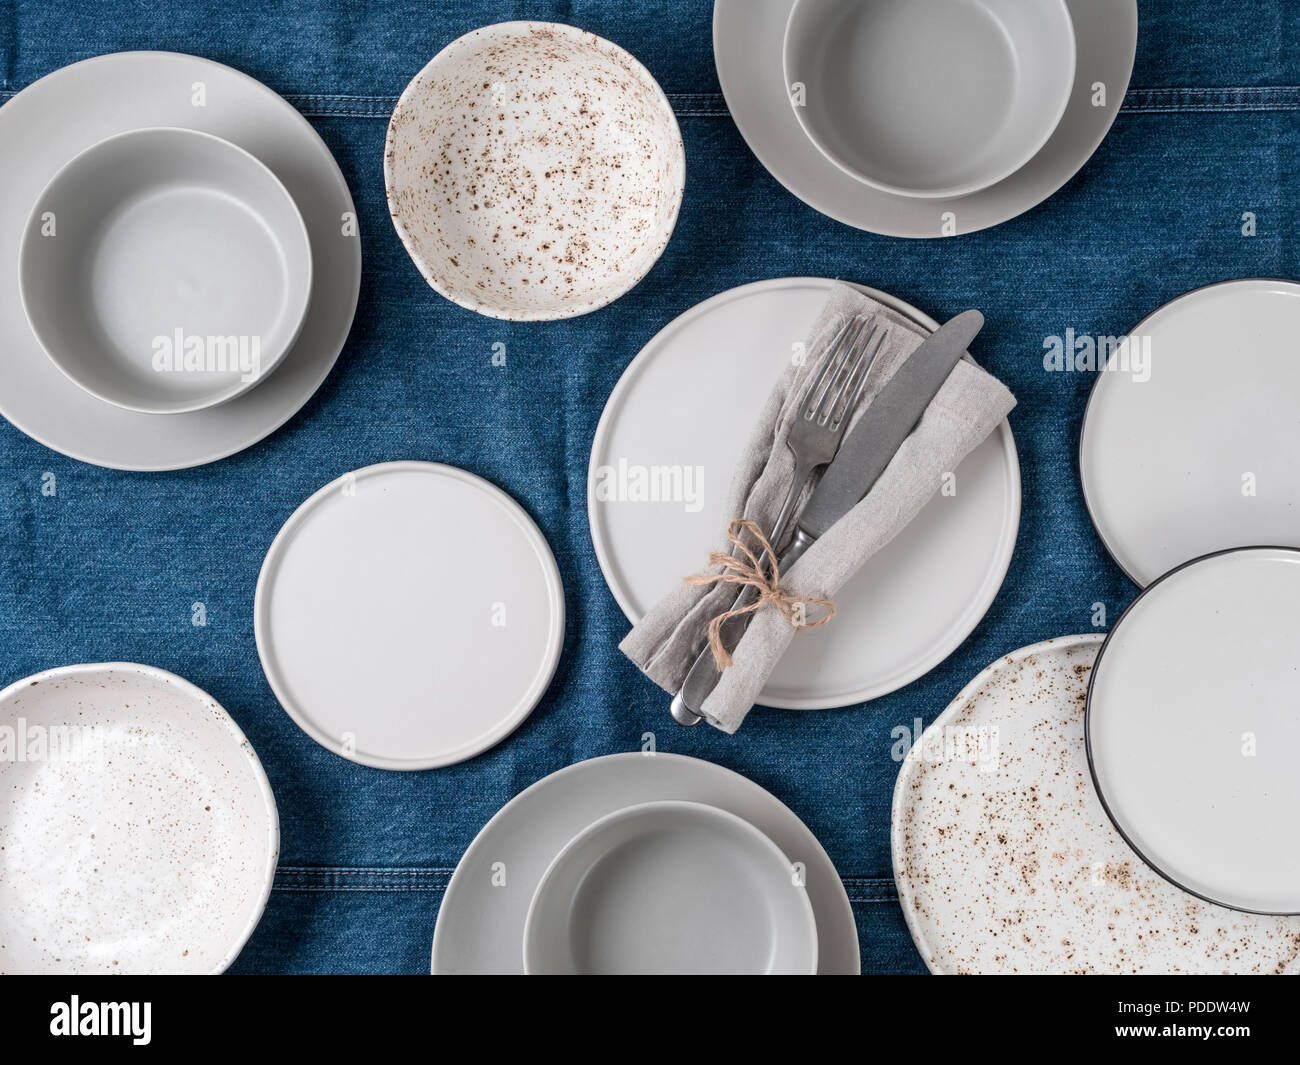 Empty Ceramic Tableware Ceramic Plates On Jeans Tablecloth Or Runner Overview Empty Food Table With Tableware